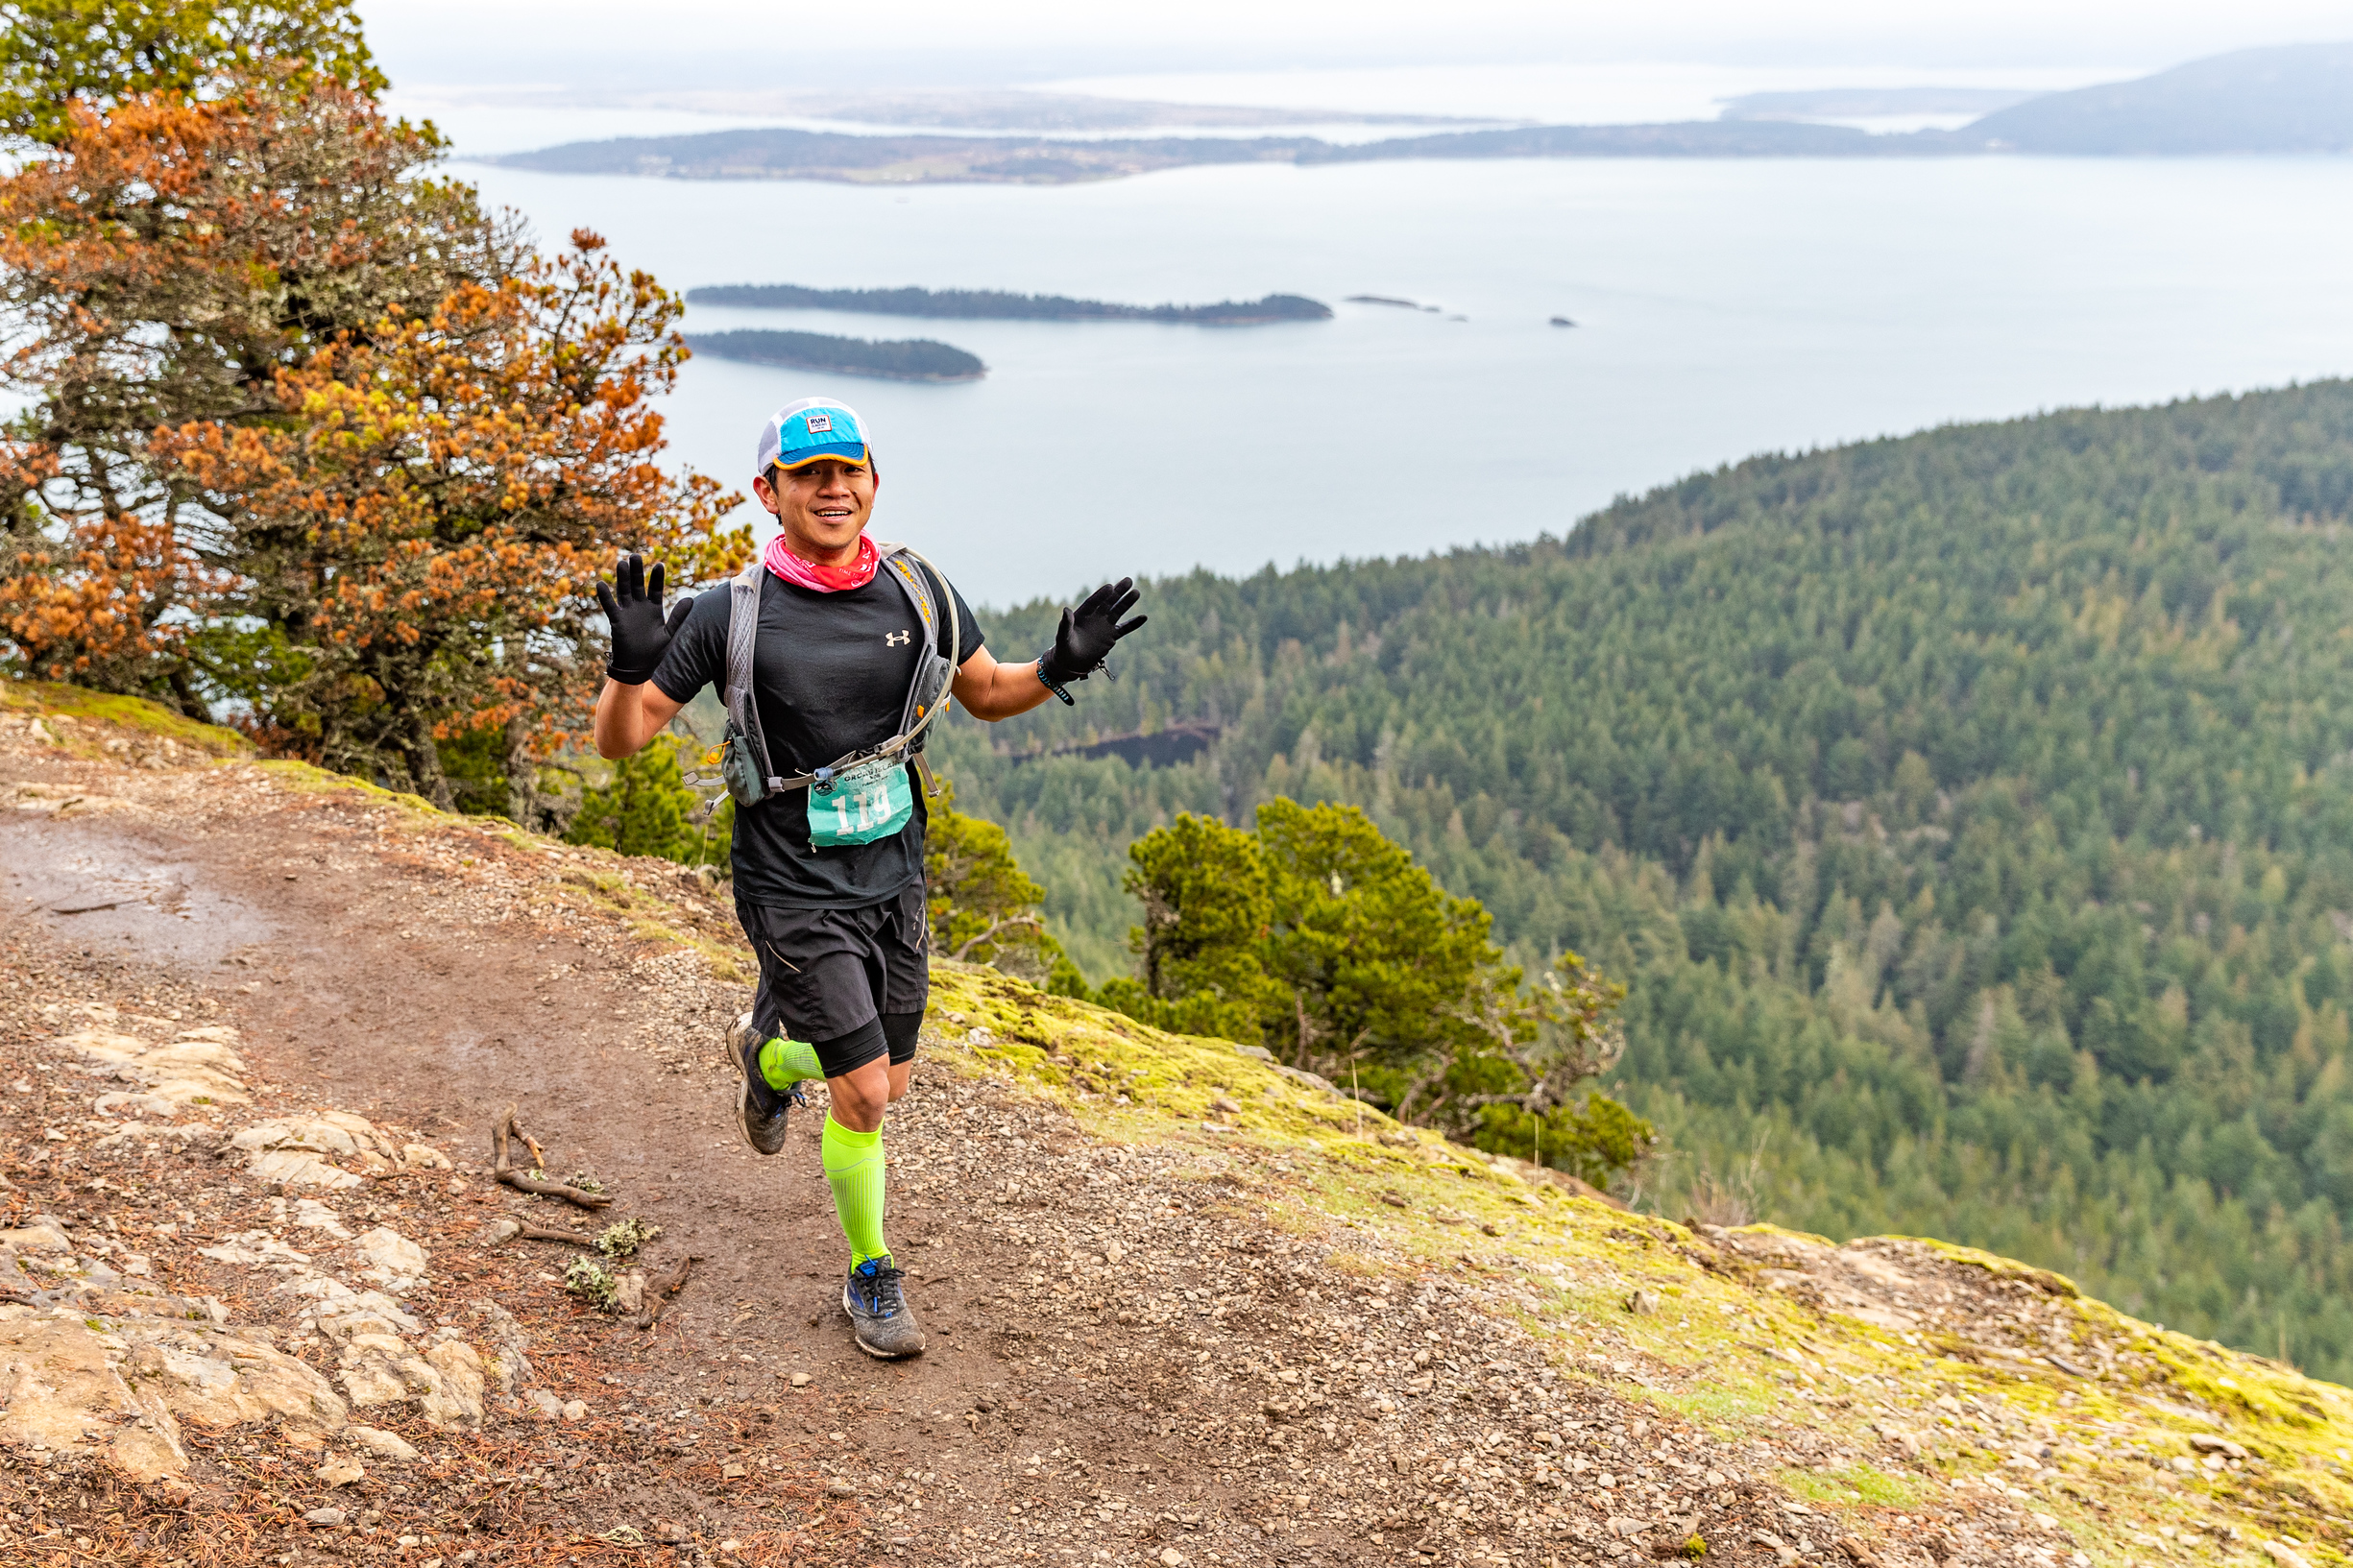 The views at the top of Mount Constitution during the Orcas Island 50K on Feb 2, 2019. Photo licensed from  Glenn Tachiyama Photography